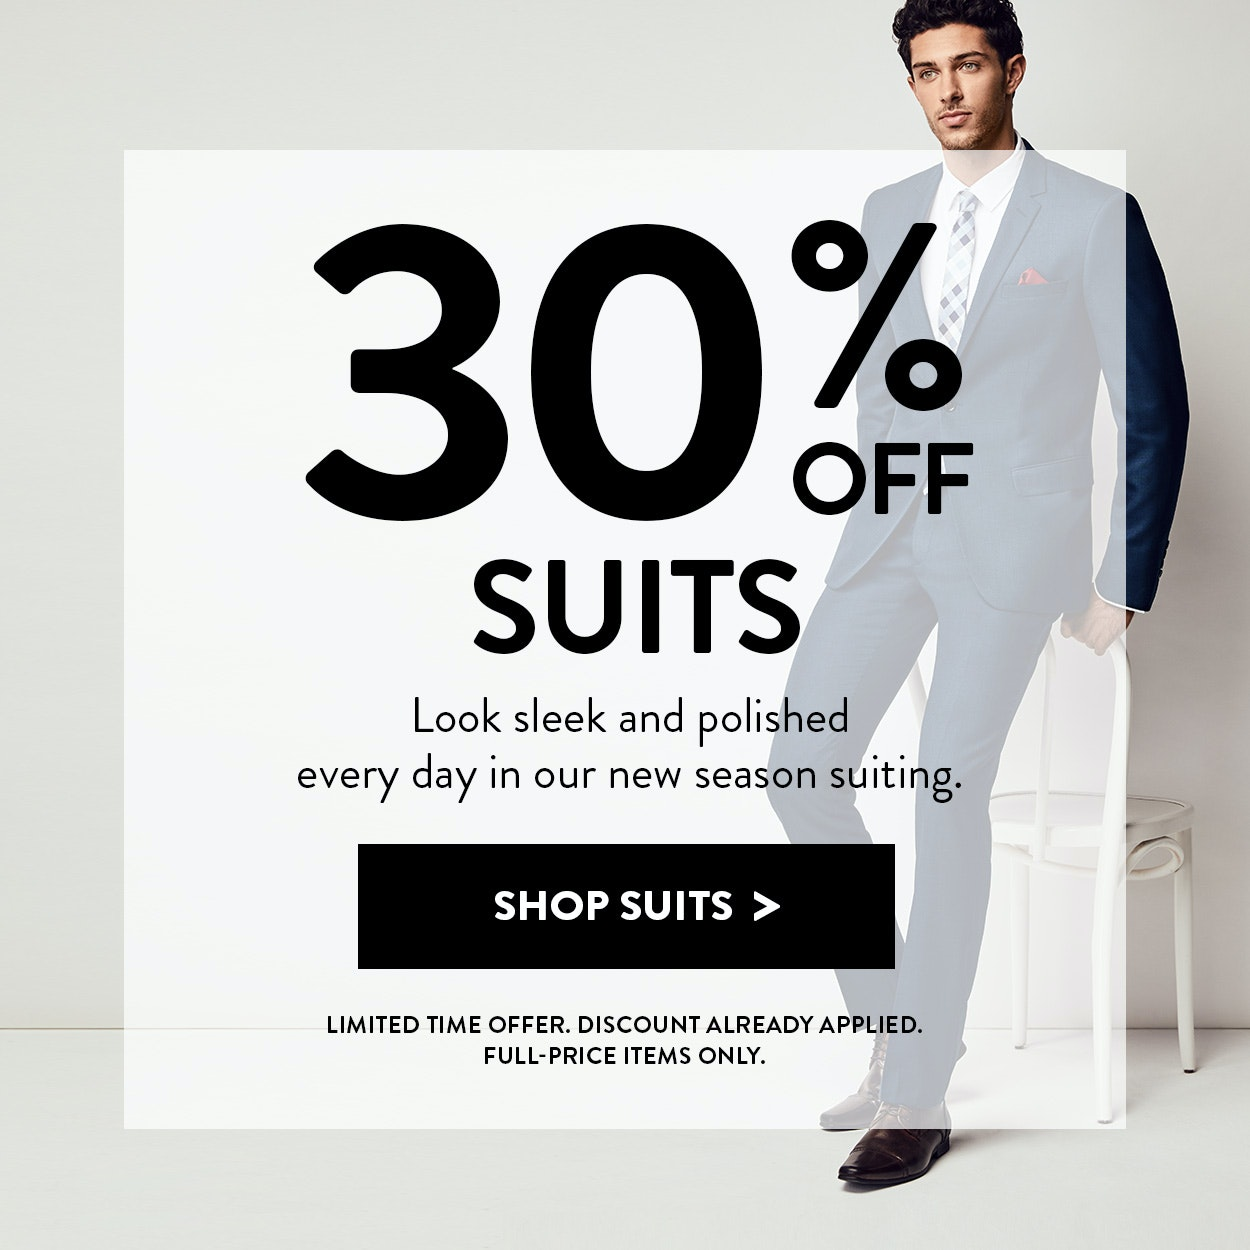 New Season suiting